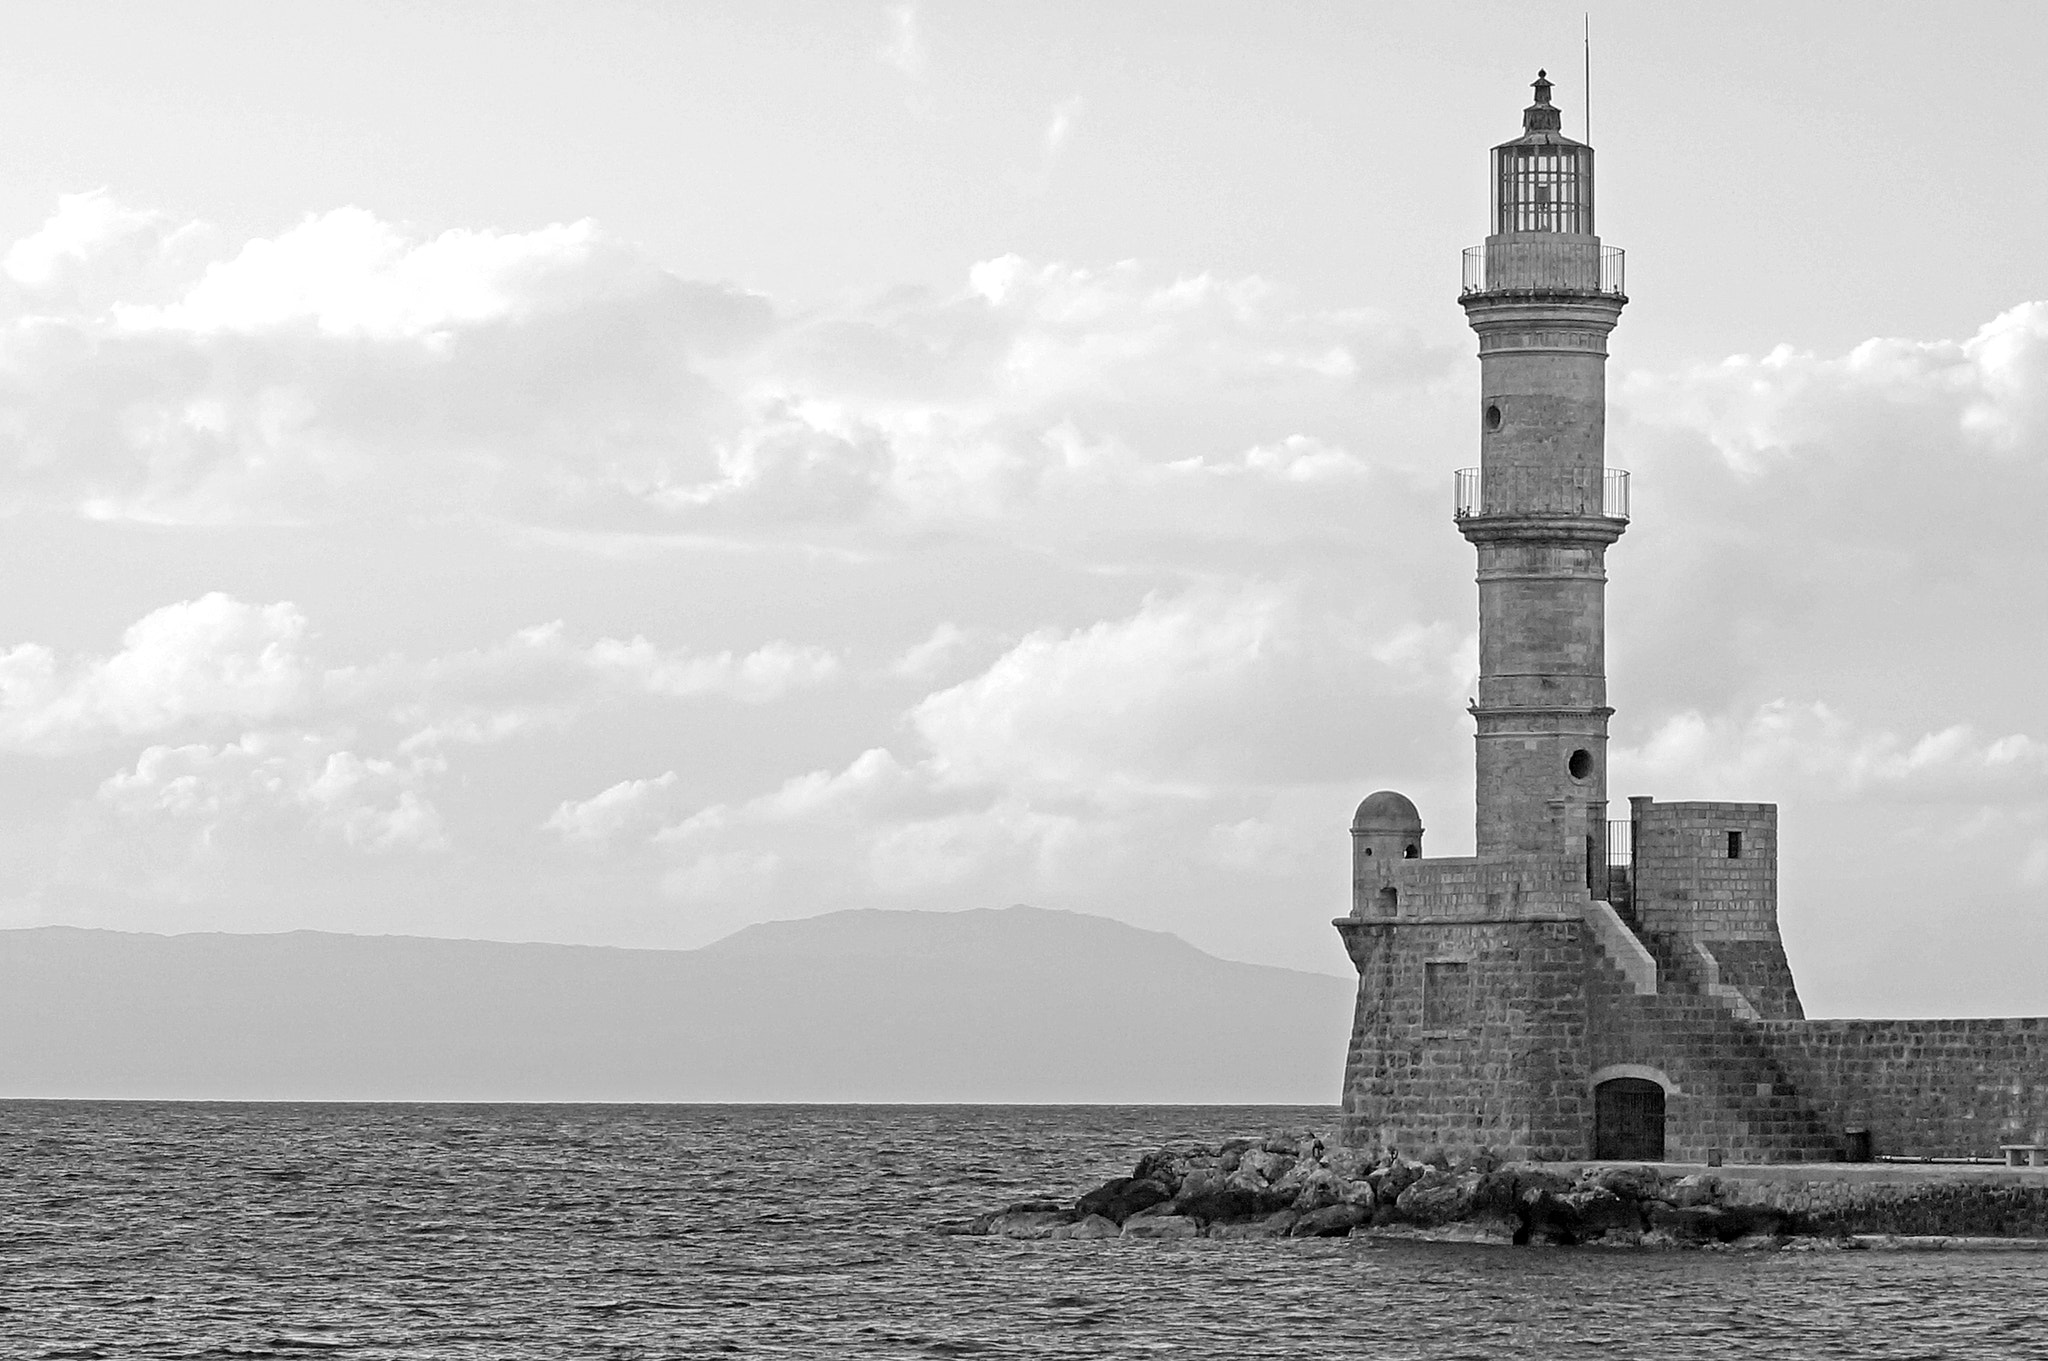 Photograph Chania Old Port Lighthouse by Spyros Papaspyropoulos on 500px